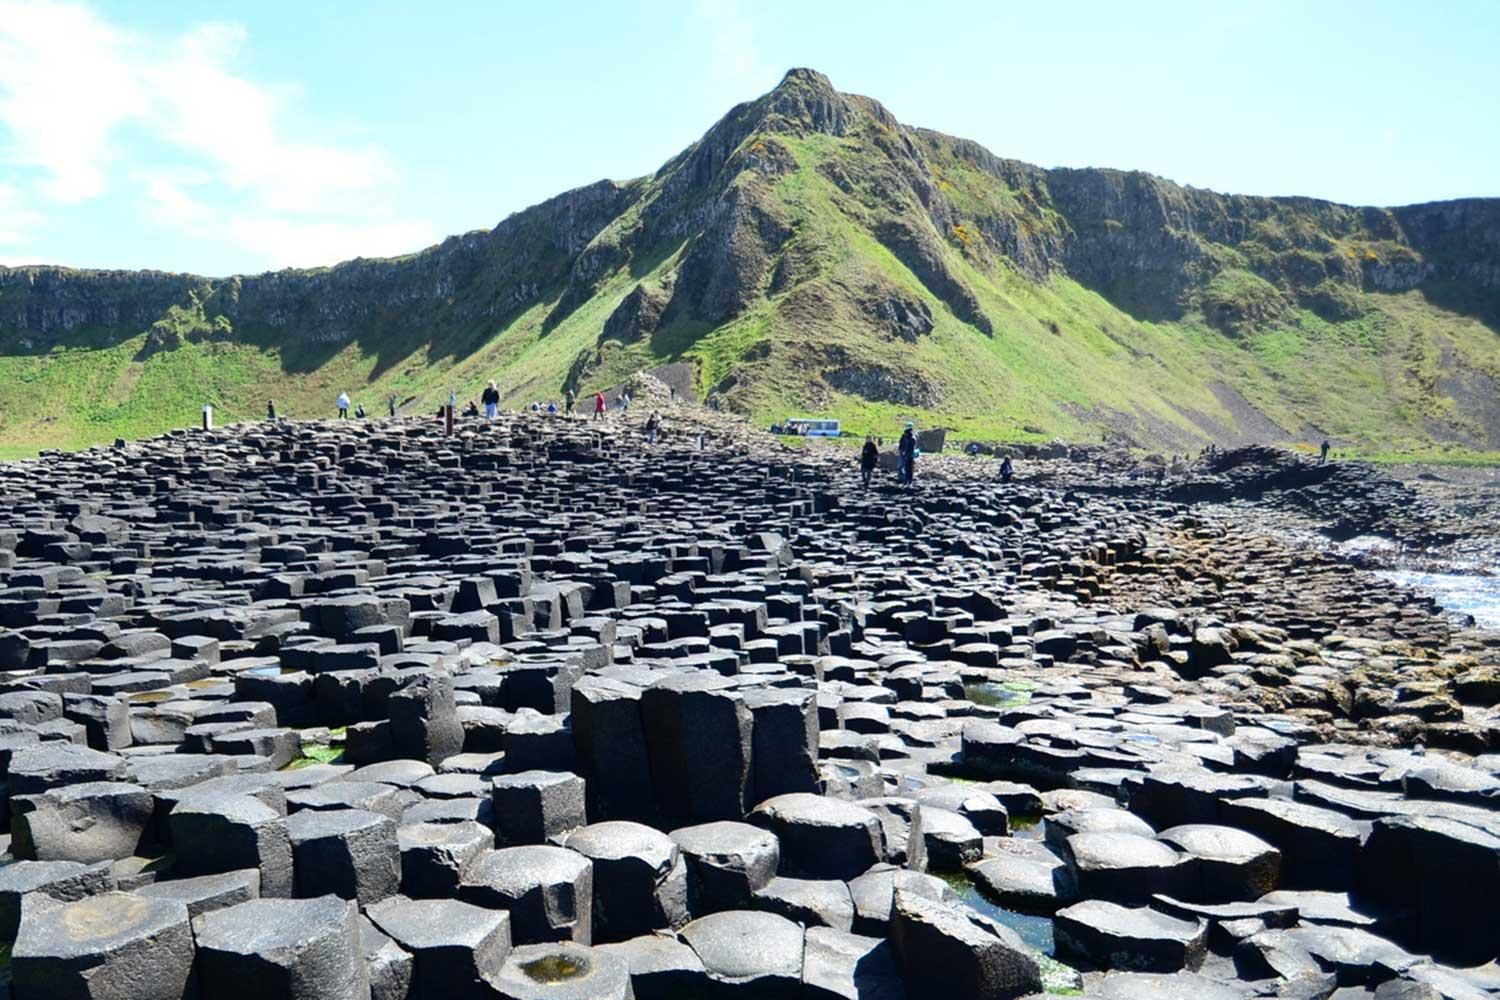 Self-guided drive & hike tour around Ireland - the Giant's Causeway